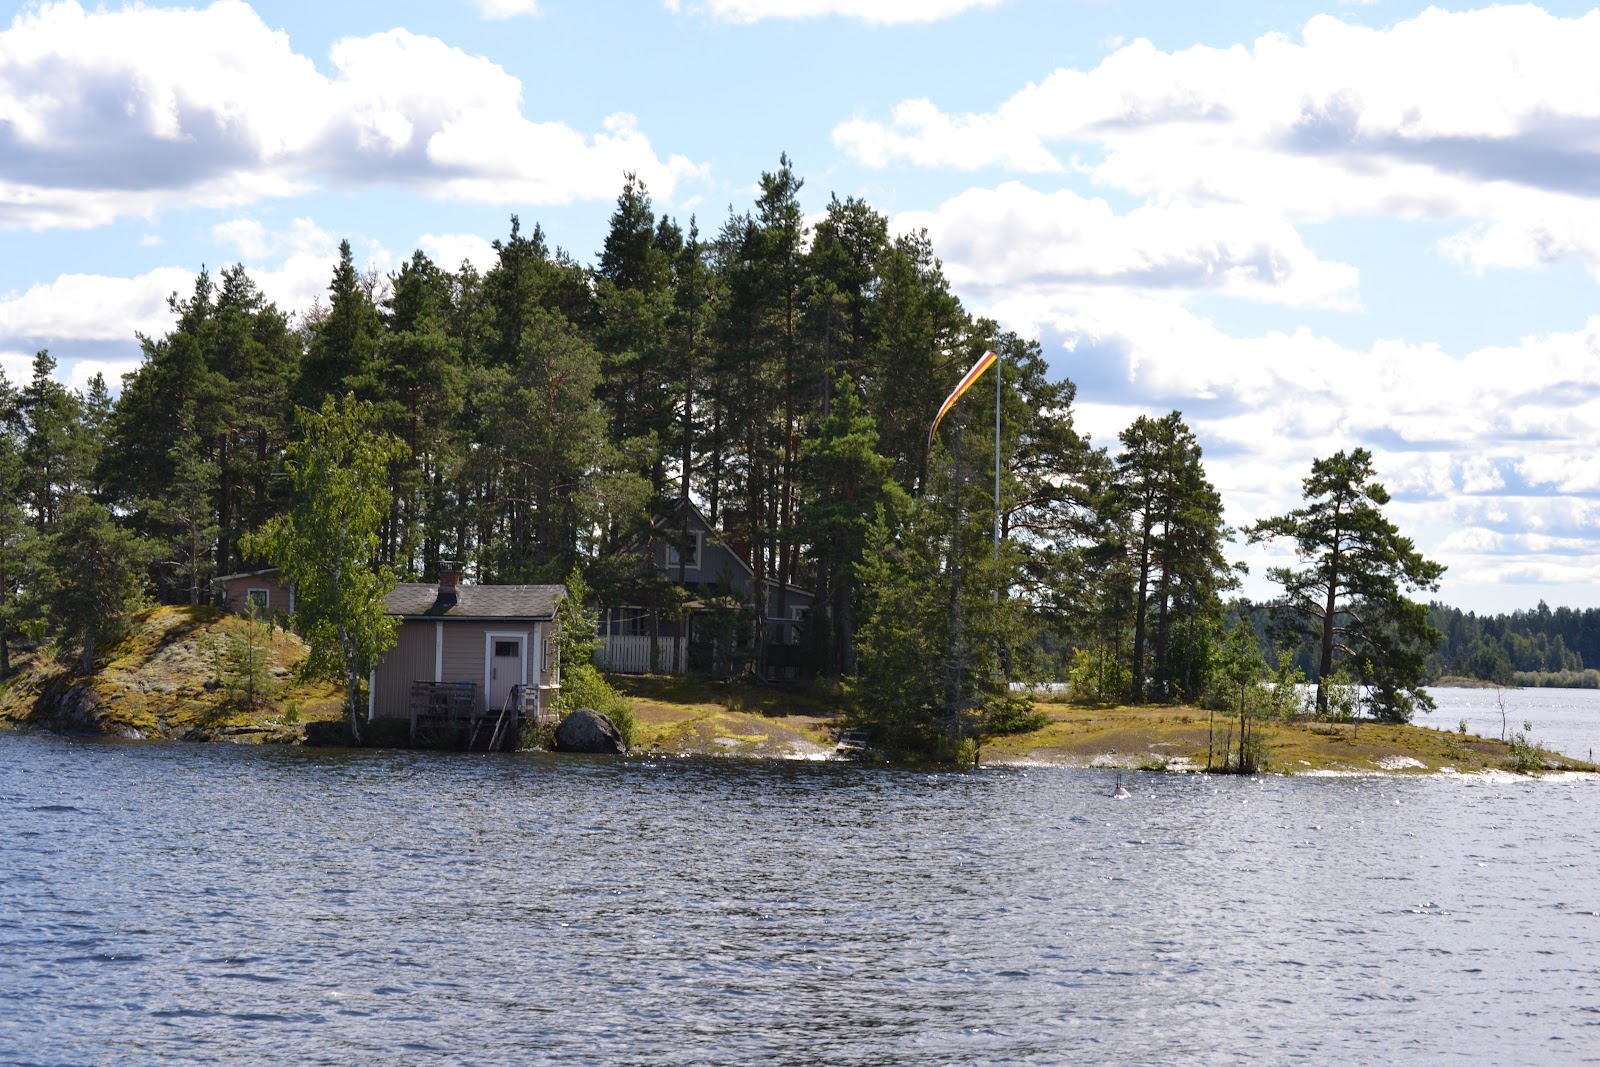 Veneilyä Saimaalla – Boating on the Lake Saimaa